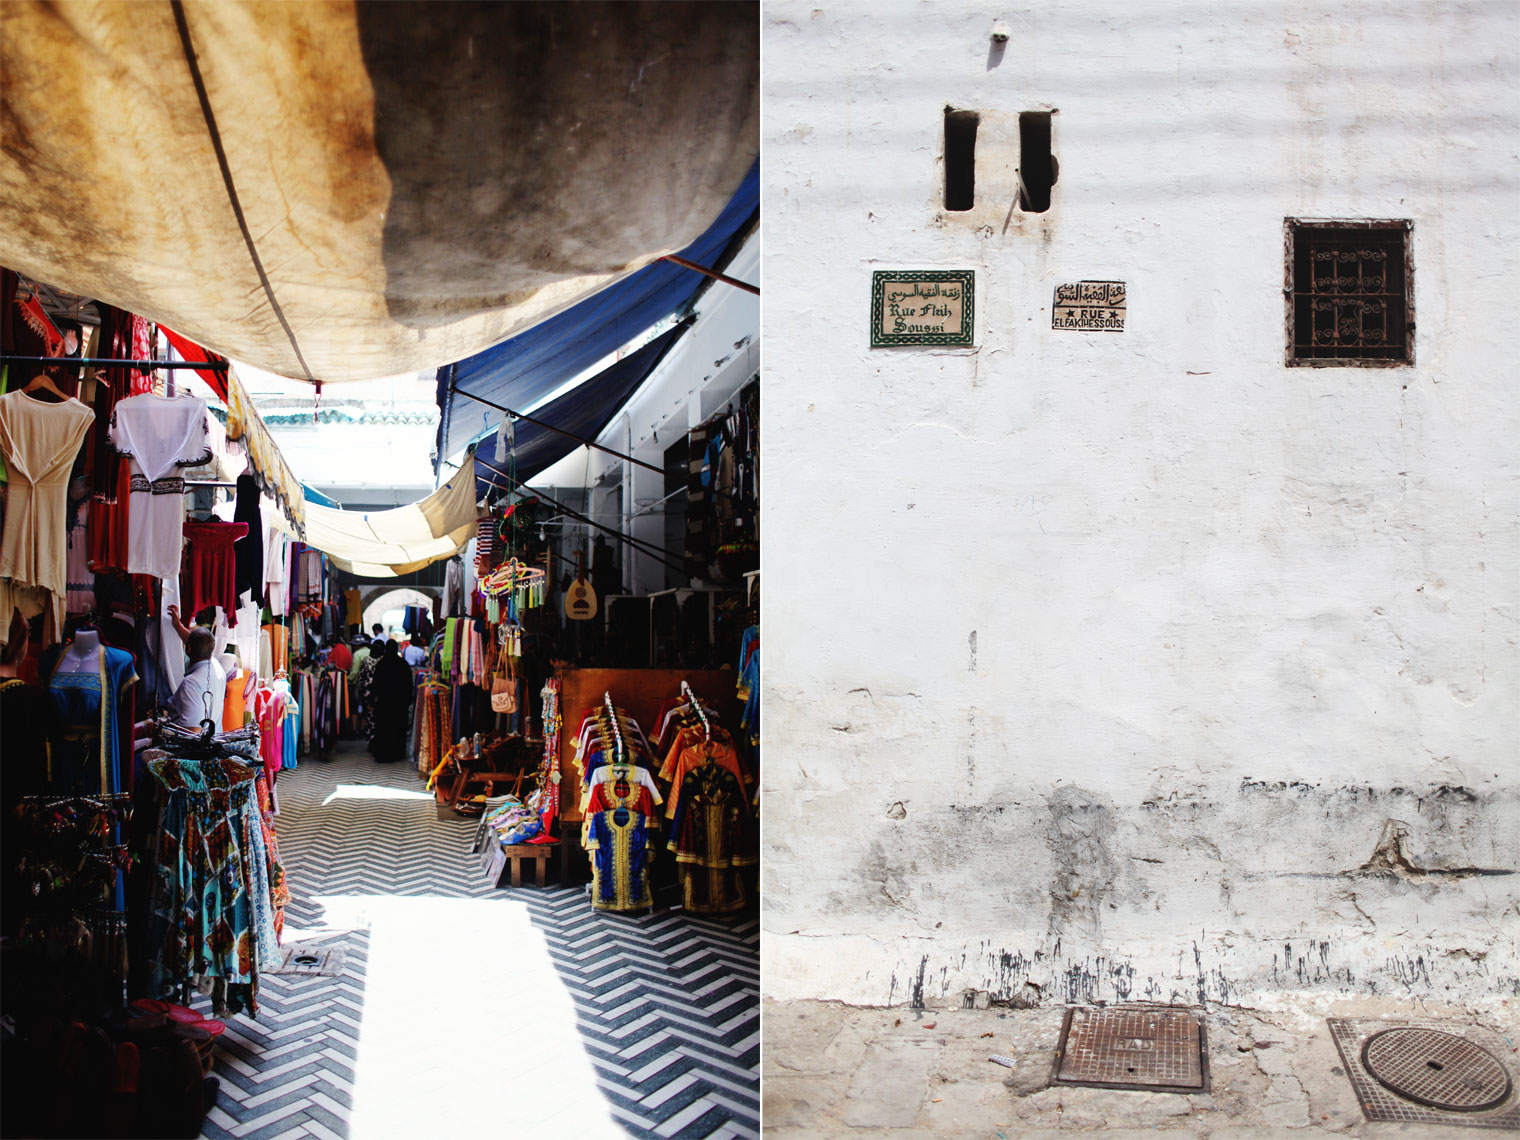 peggy-wong-photography_pwtravelogue_7872_7859_casablanca_morocco